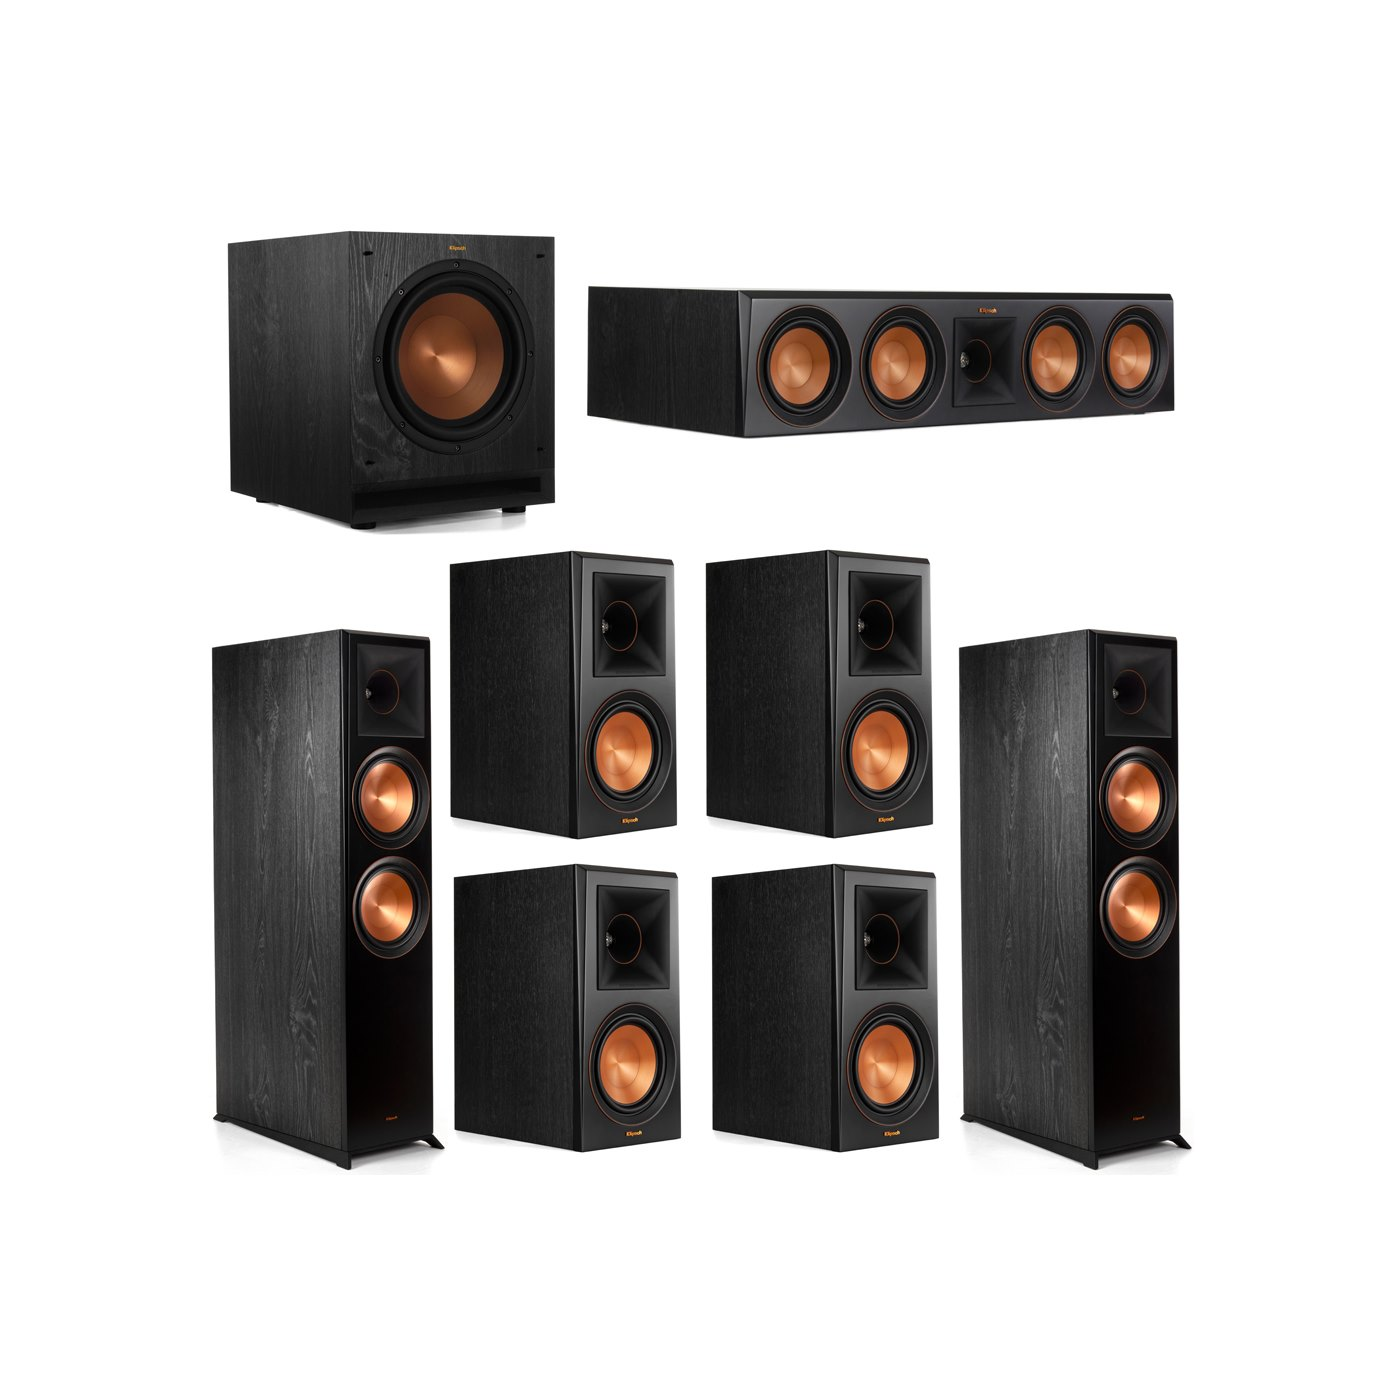 Klipsch 7.1 System with 2 RP-8000F Floorstanding Speakers, 1 Klipsch RP-504C Center Speaker, 4 Klipsch RP-600M Surround Speakers, 1 Klipsch SPL-100 Subwoofer